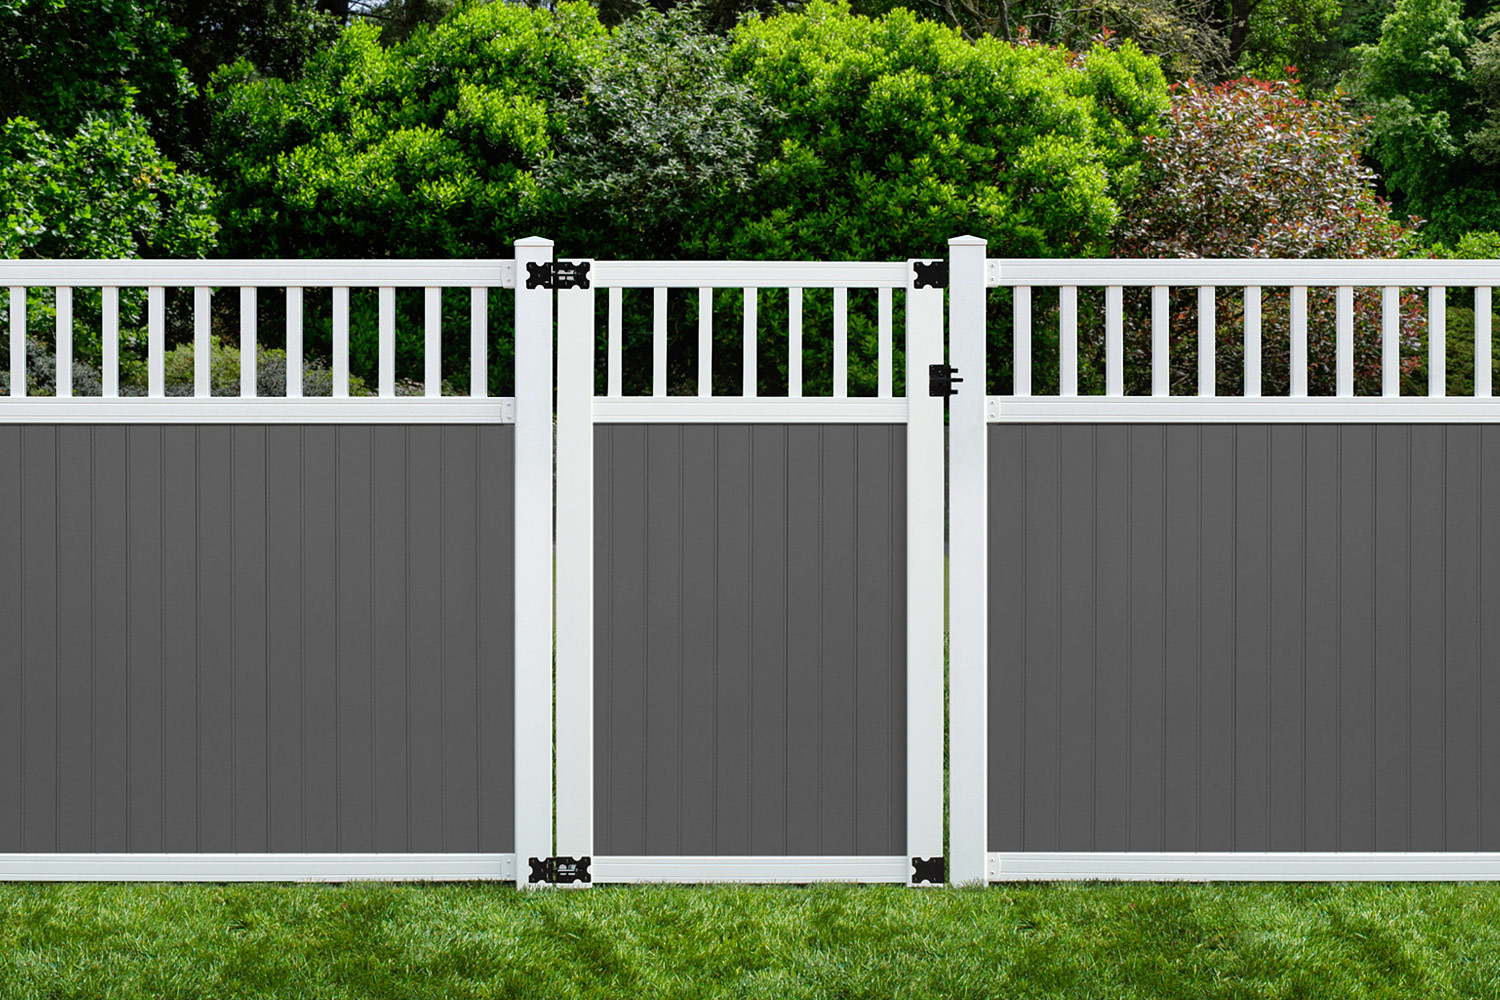 Sixth Avenue Building Products Spindle Top Fence and Gate - Gray/White